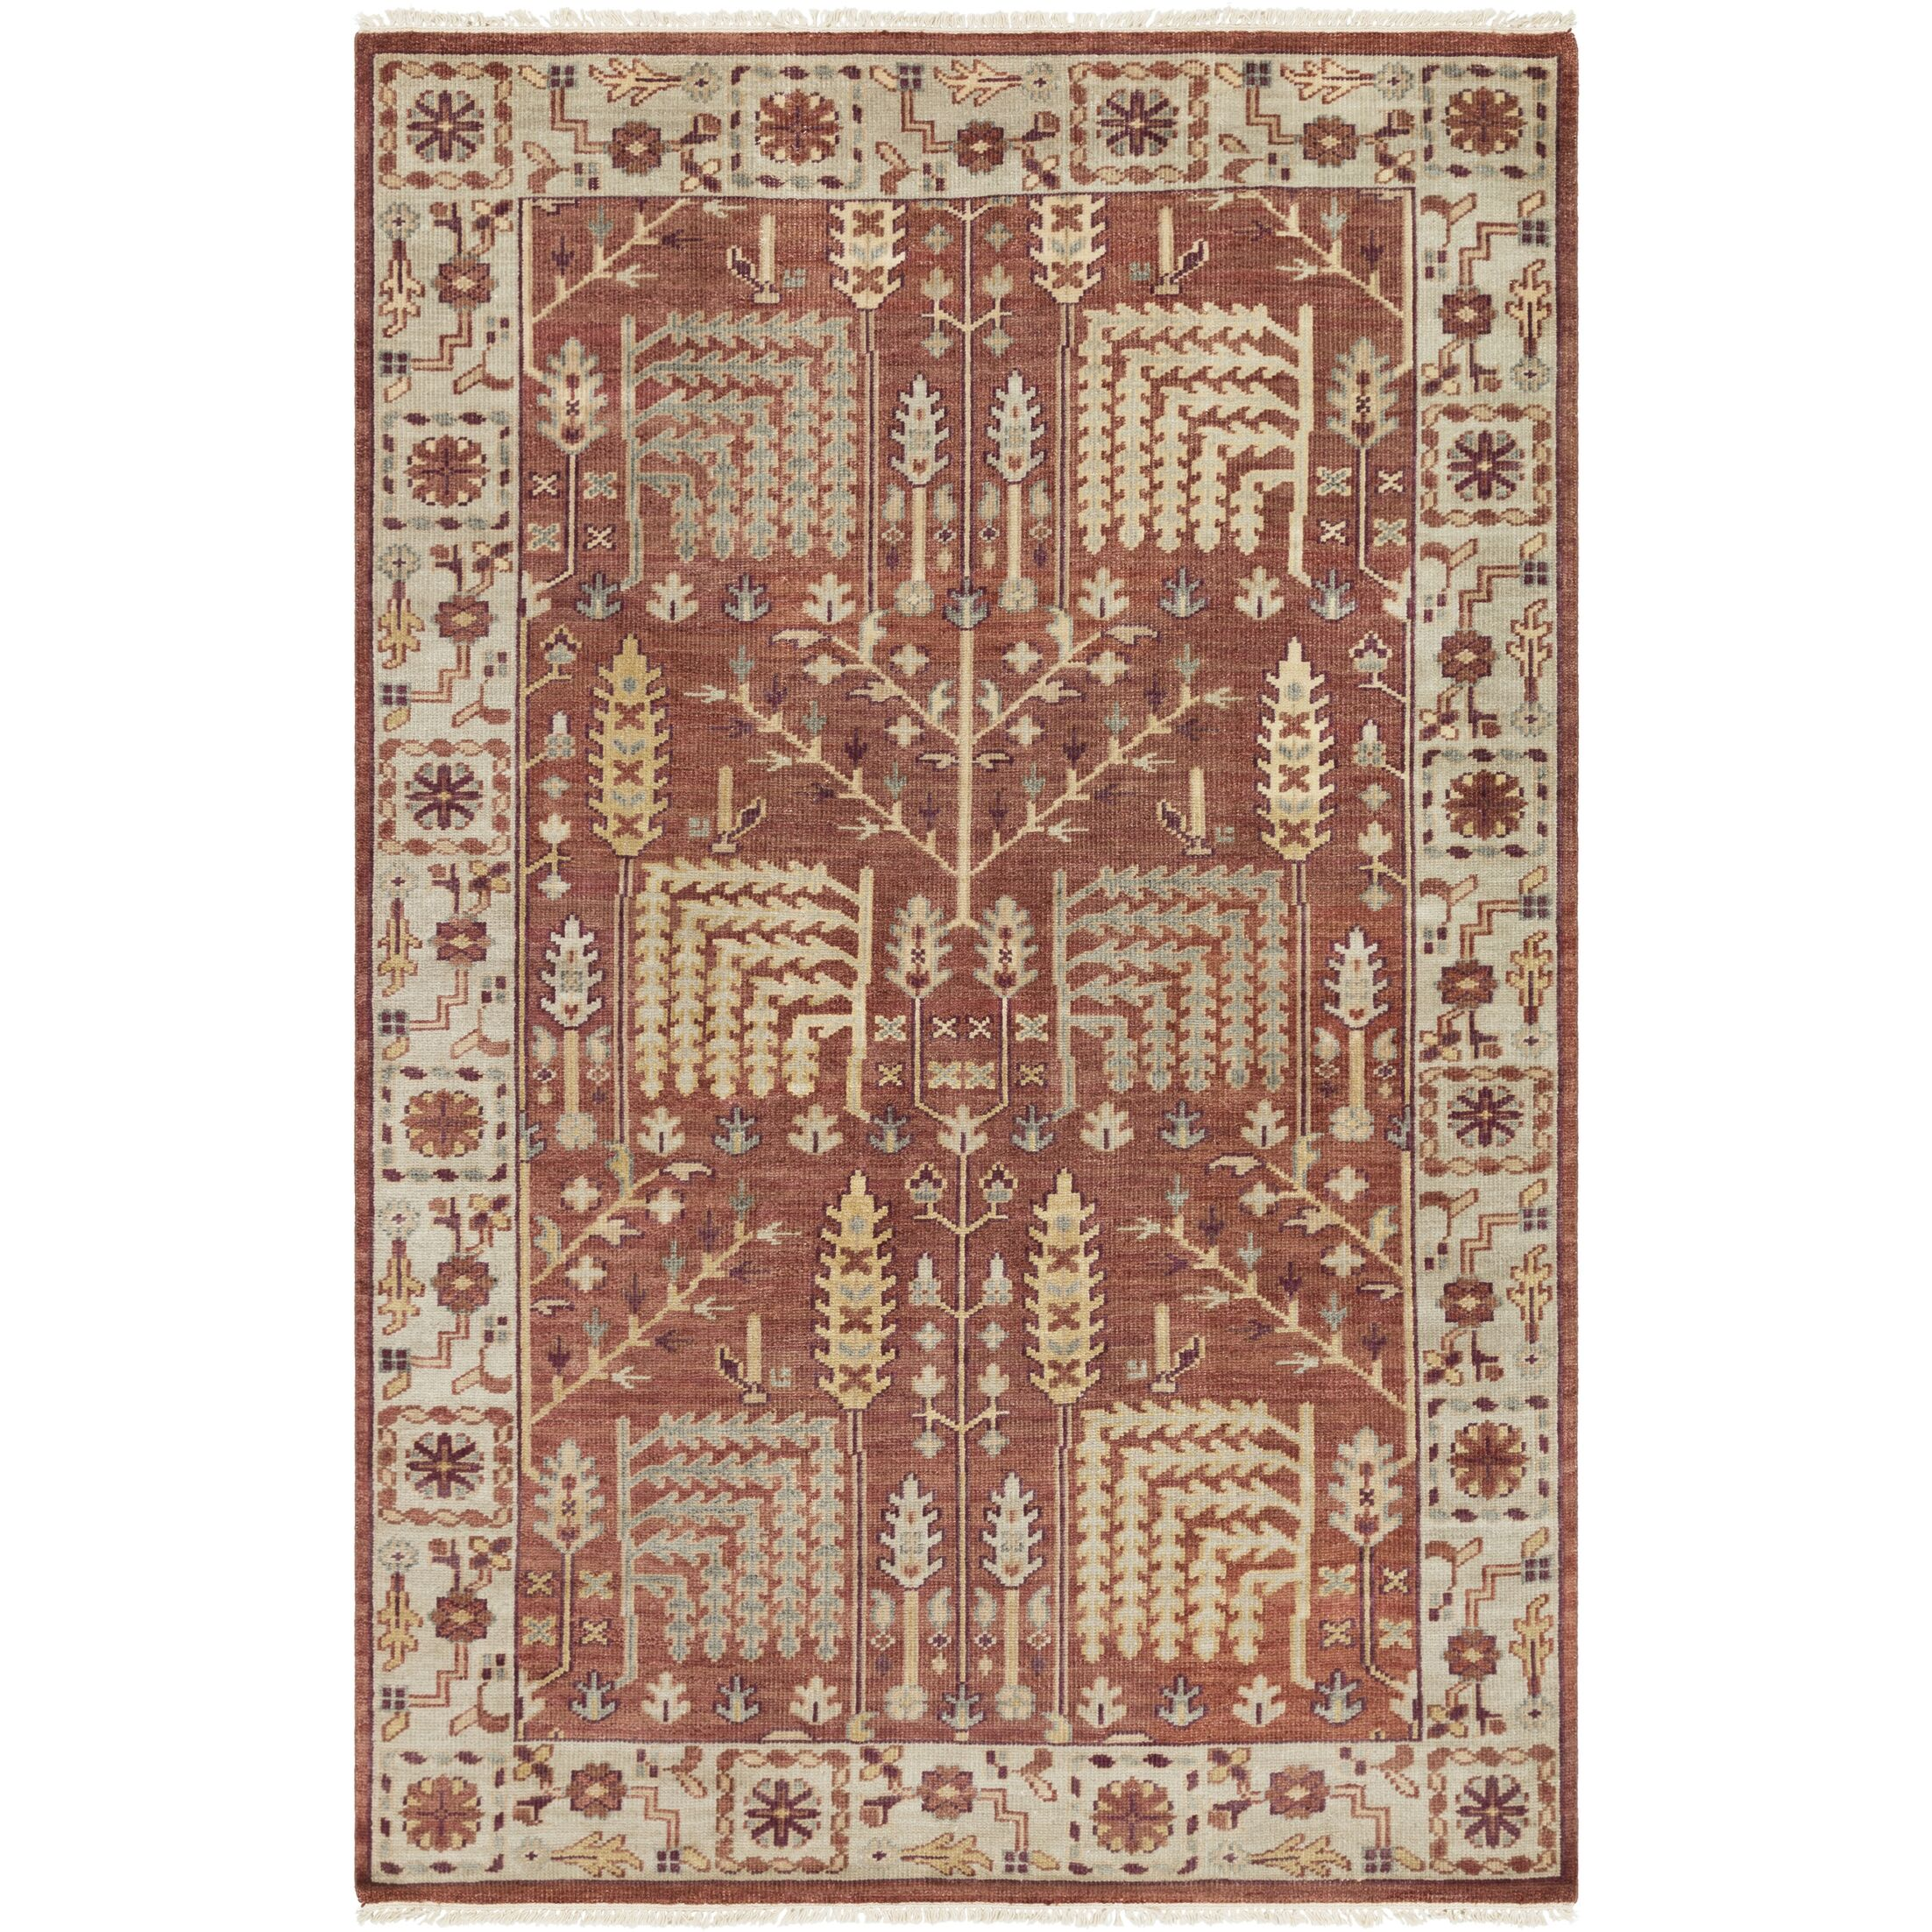 Carlisle Hand-Knotted Camel/Burgundy Area Rug Rug Size: Rectangle 6' x 9'